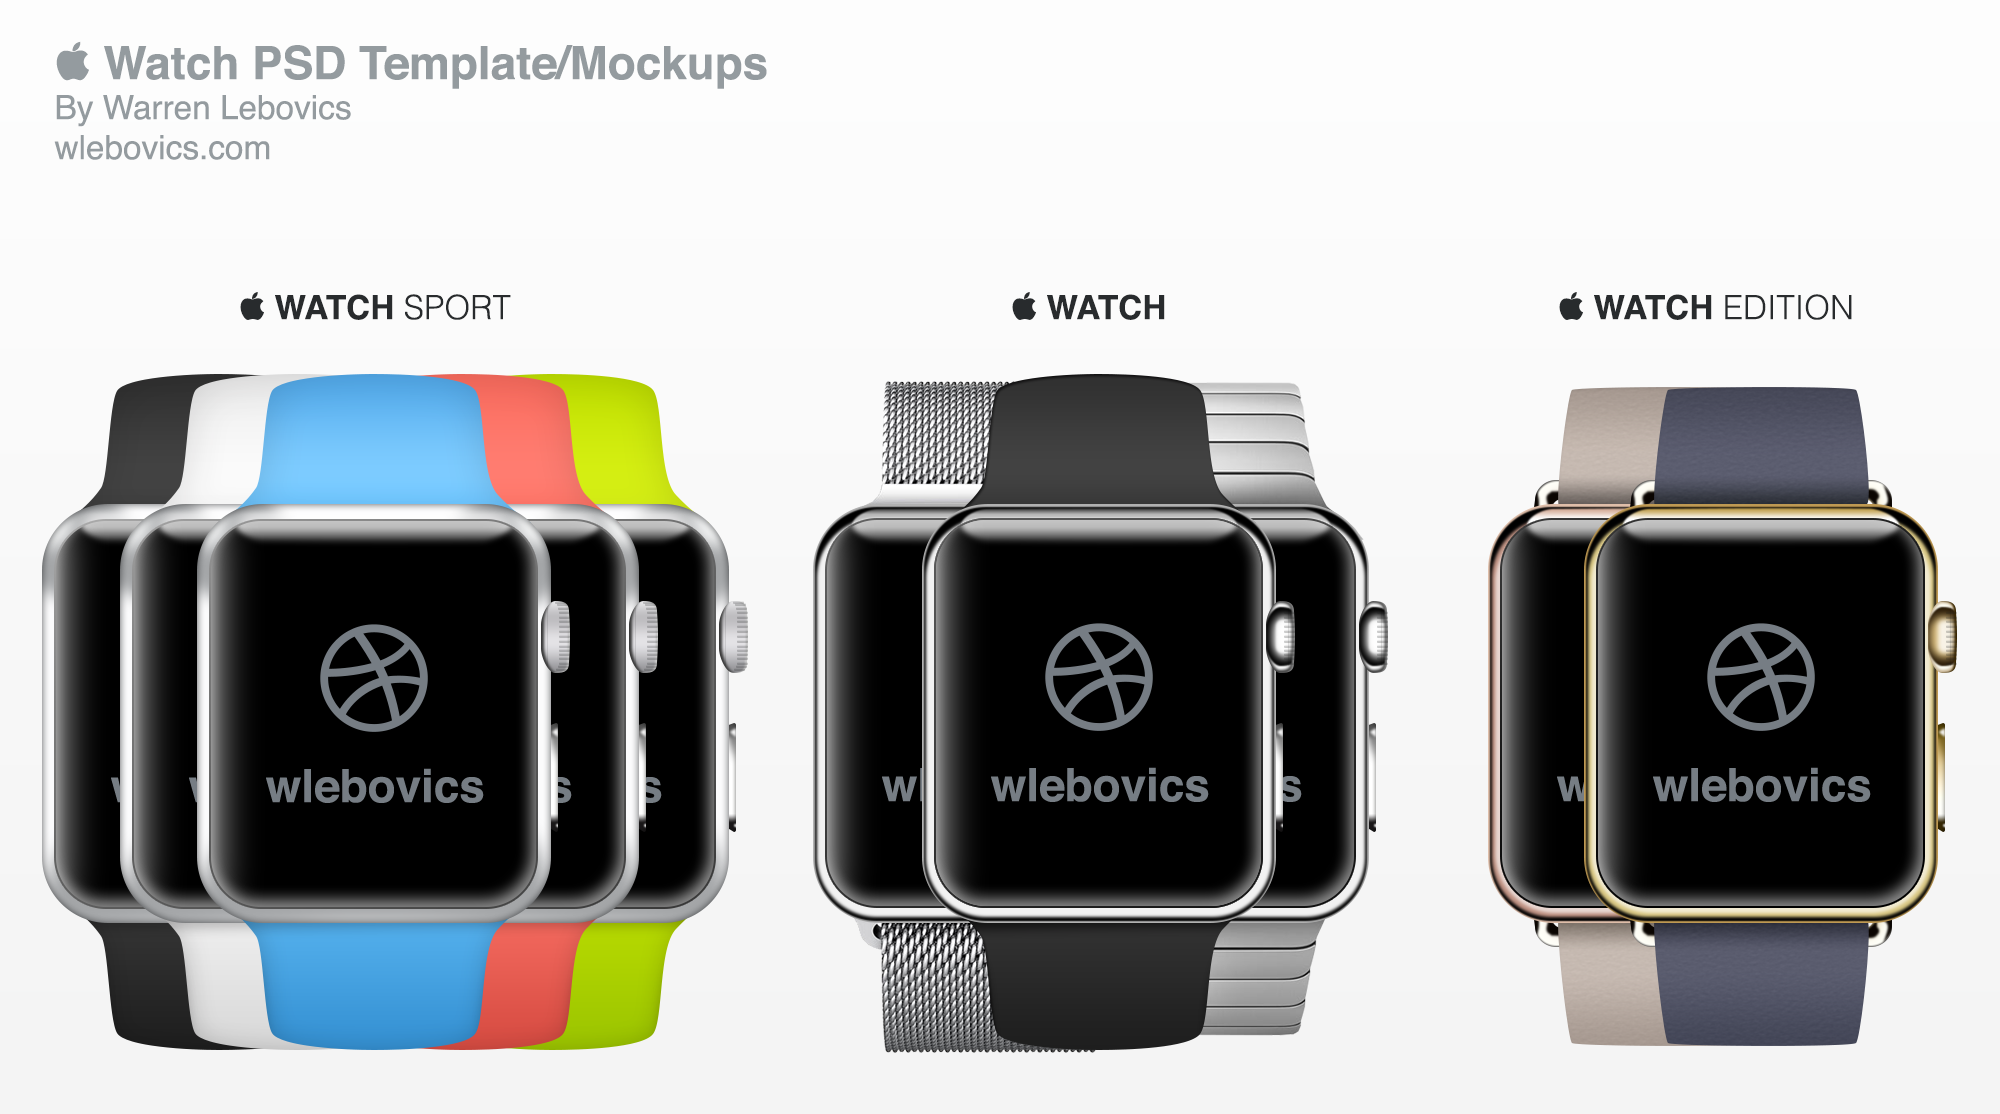 Applewatchtemplate warrenlebovics